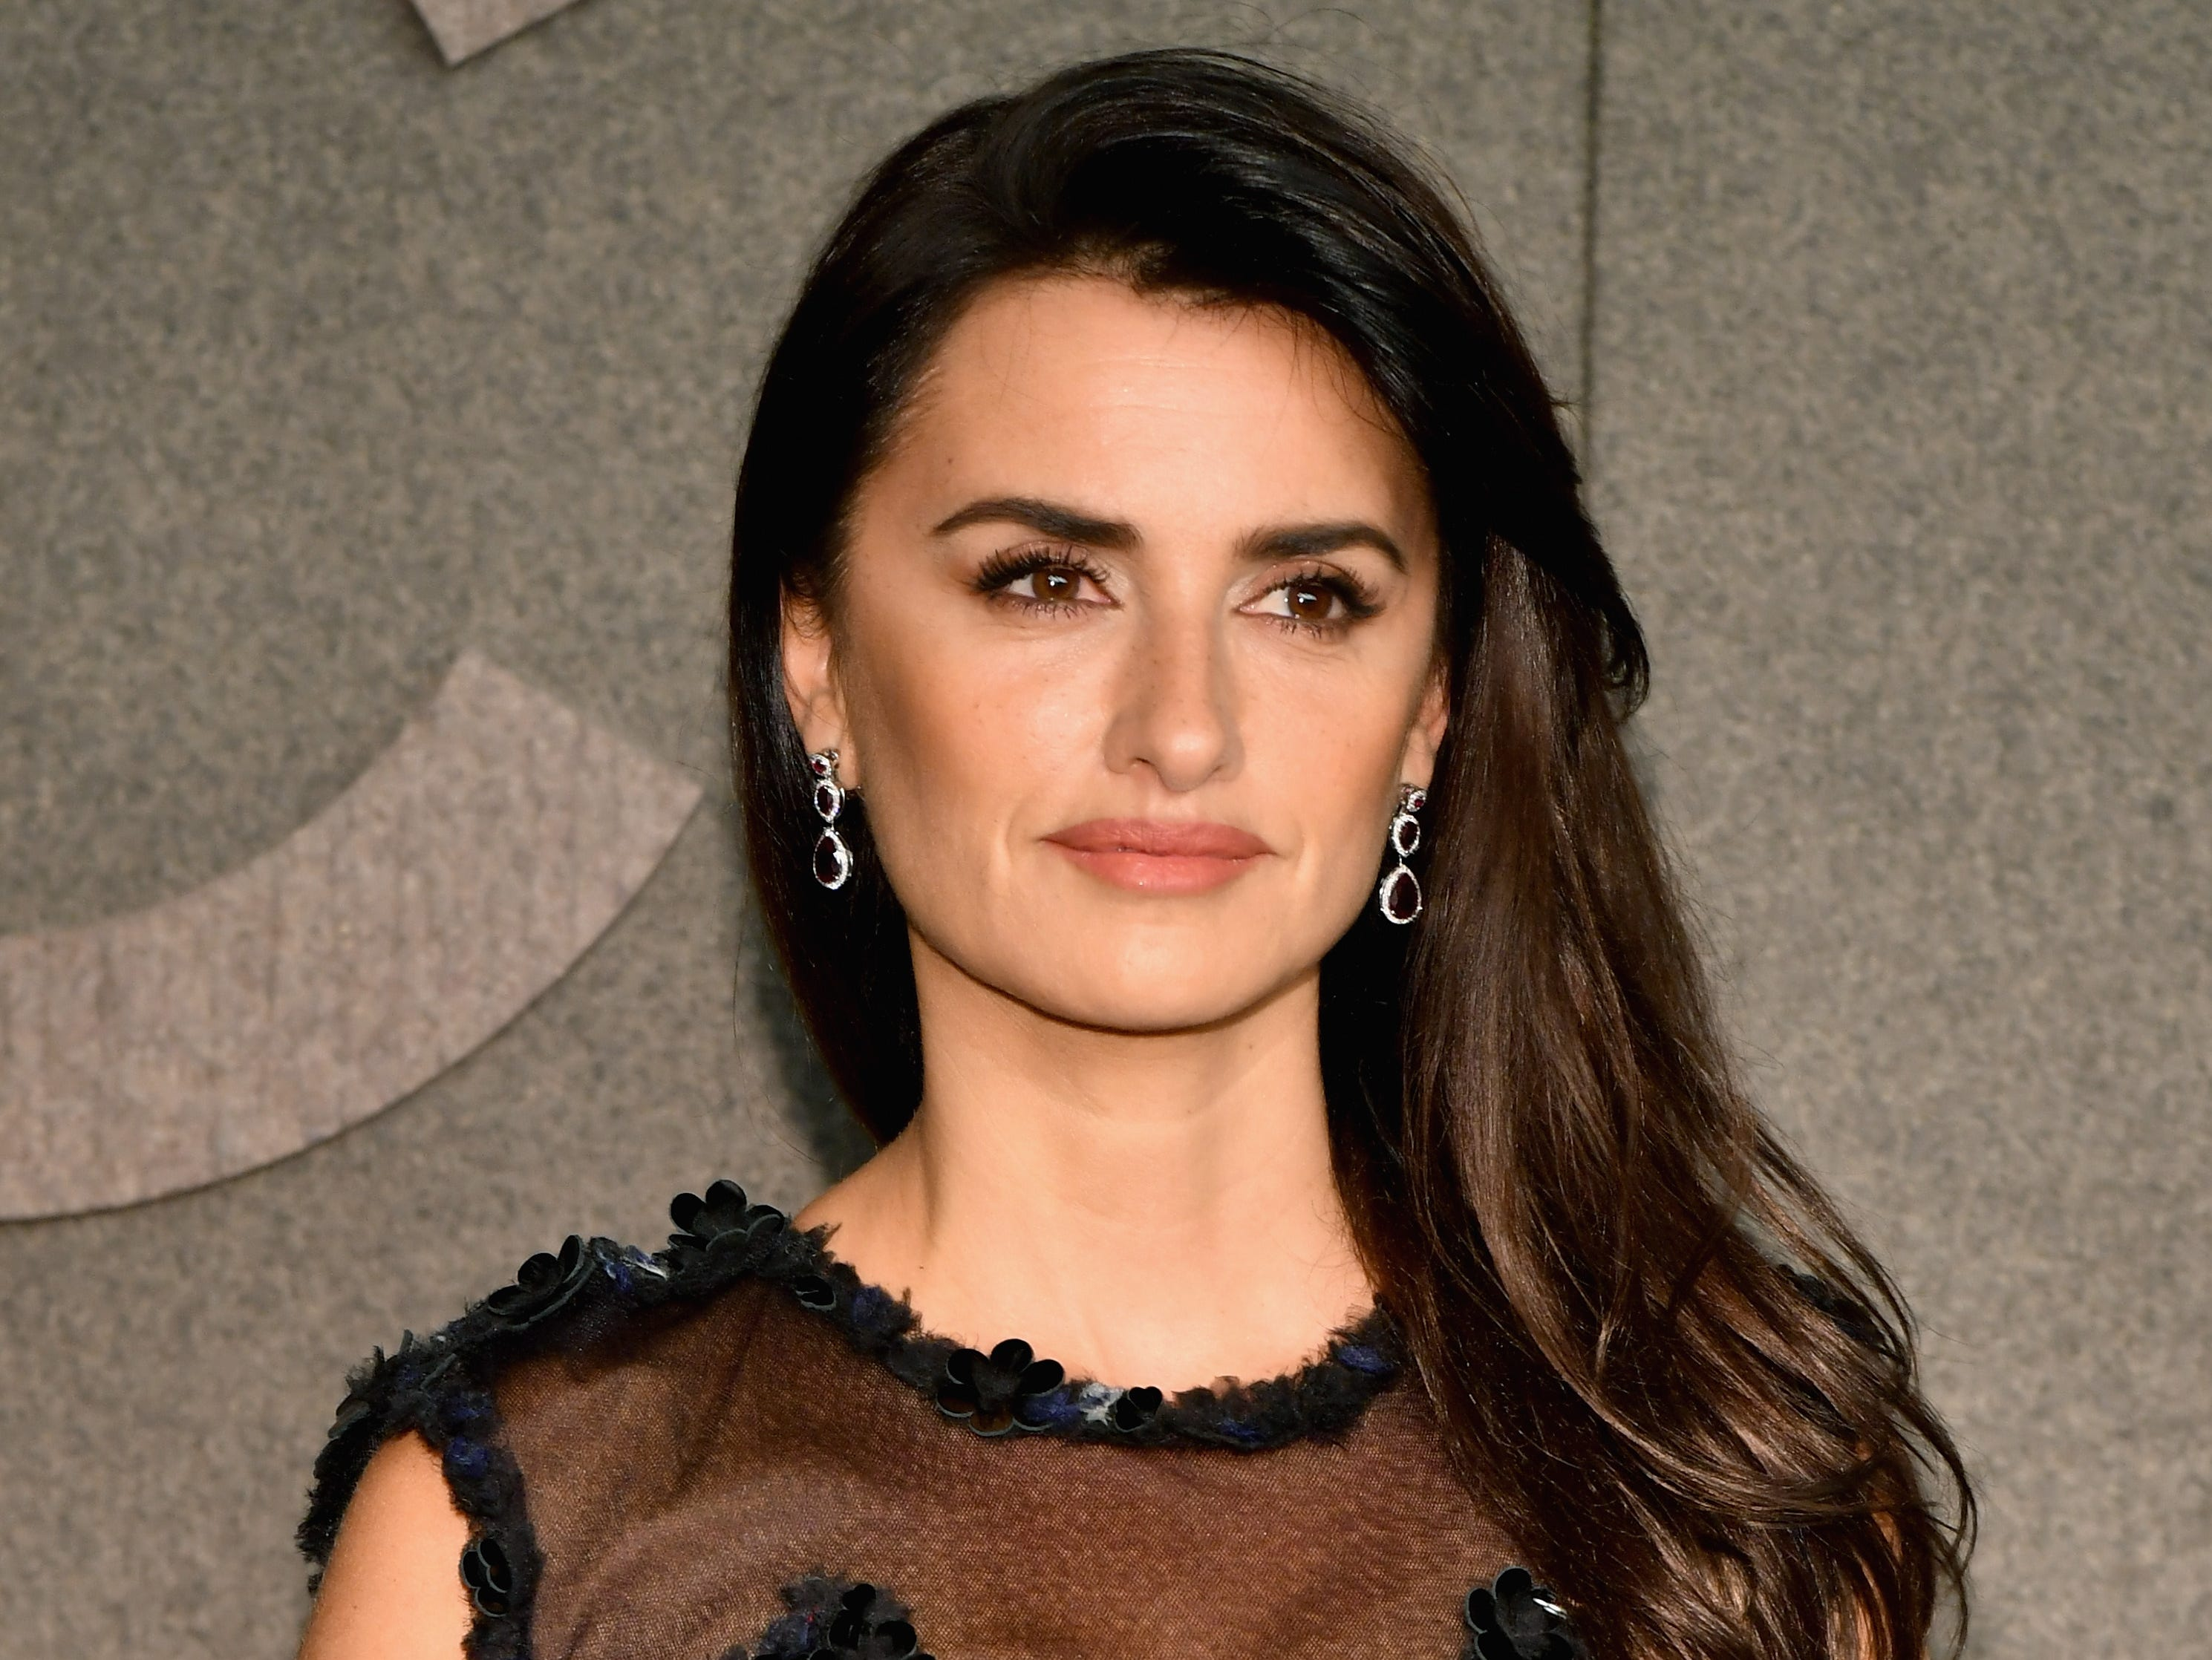 NEW YORK, NY - DECEMBER 04:  Penelope Cruz attends the CHANEL Metiers d'Art 2018/19 Show at The Metropolitan Museum of Art on December 4, 2018 in New York City.  (Photo by Slaven Vlasic/WireImage) ORG XMIT: 775265225 ORIG FILE ID: 1068531812